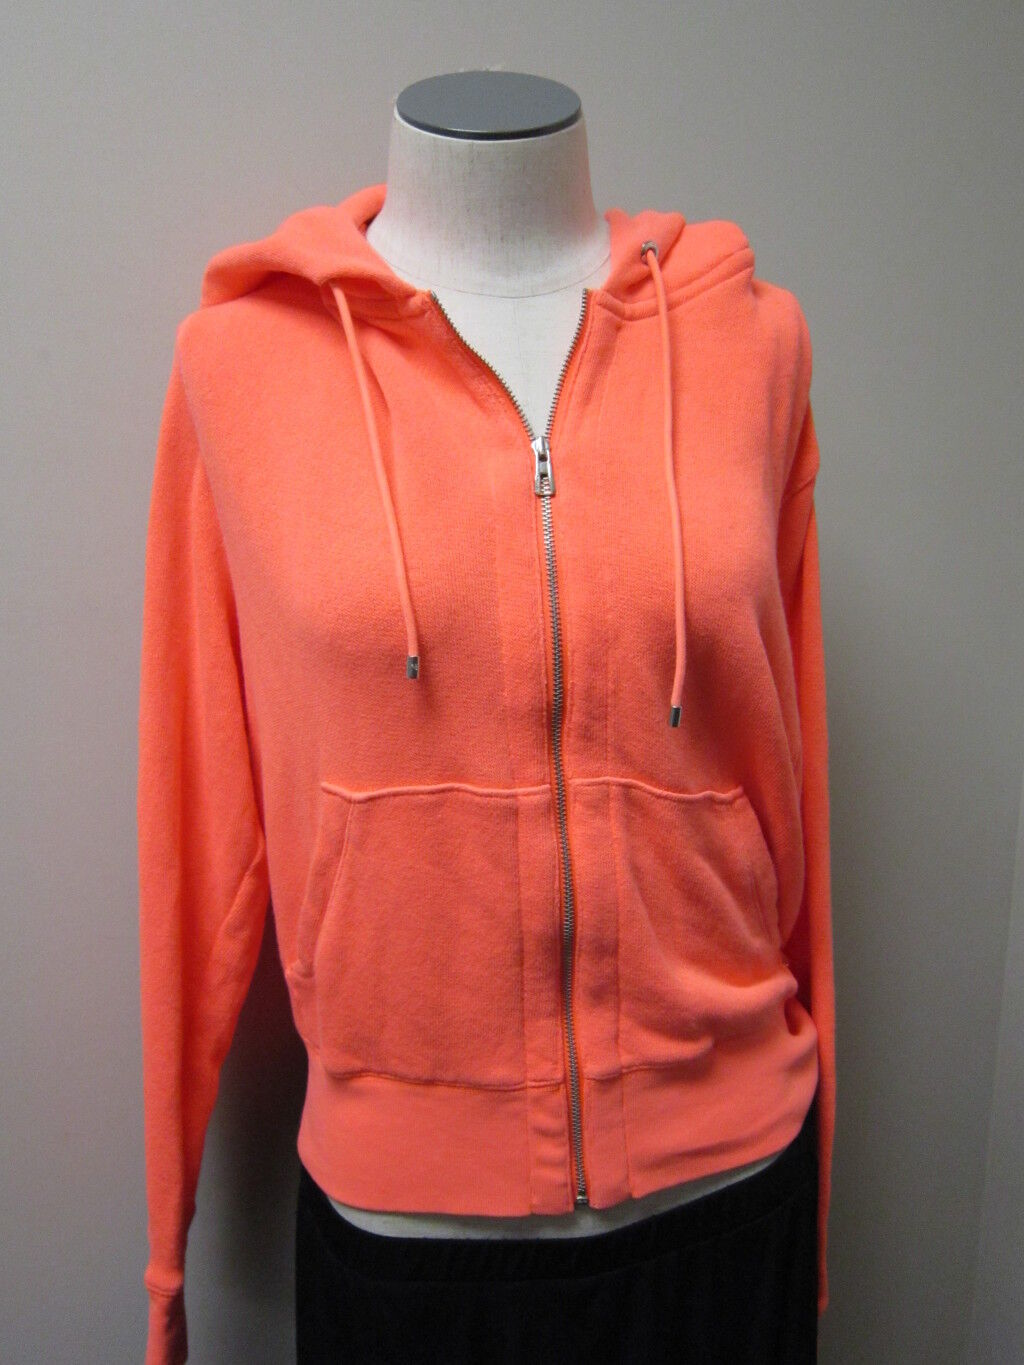 RLX by Ralph Lauren Zip Front Hoody S Florescent orange NWT  125